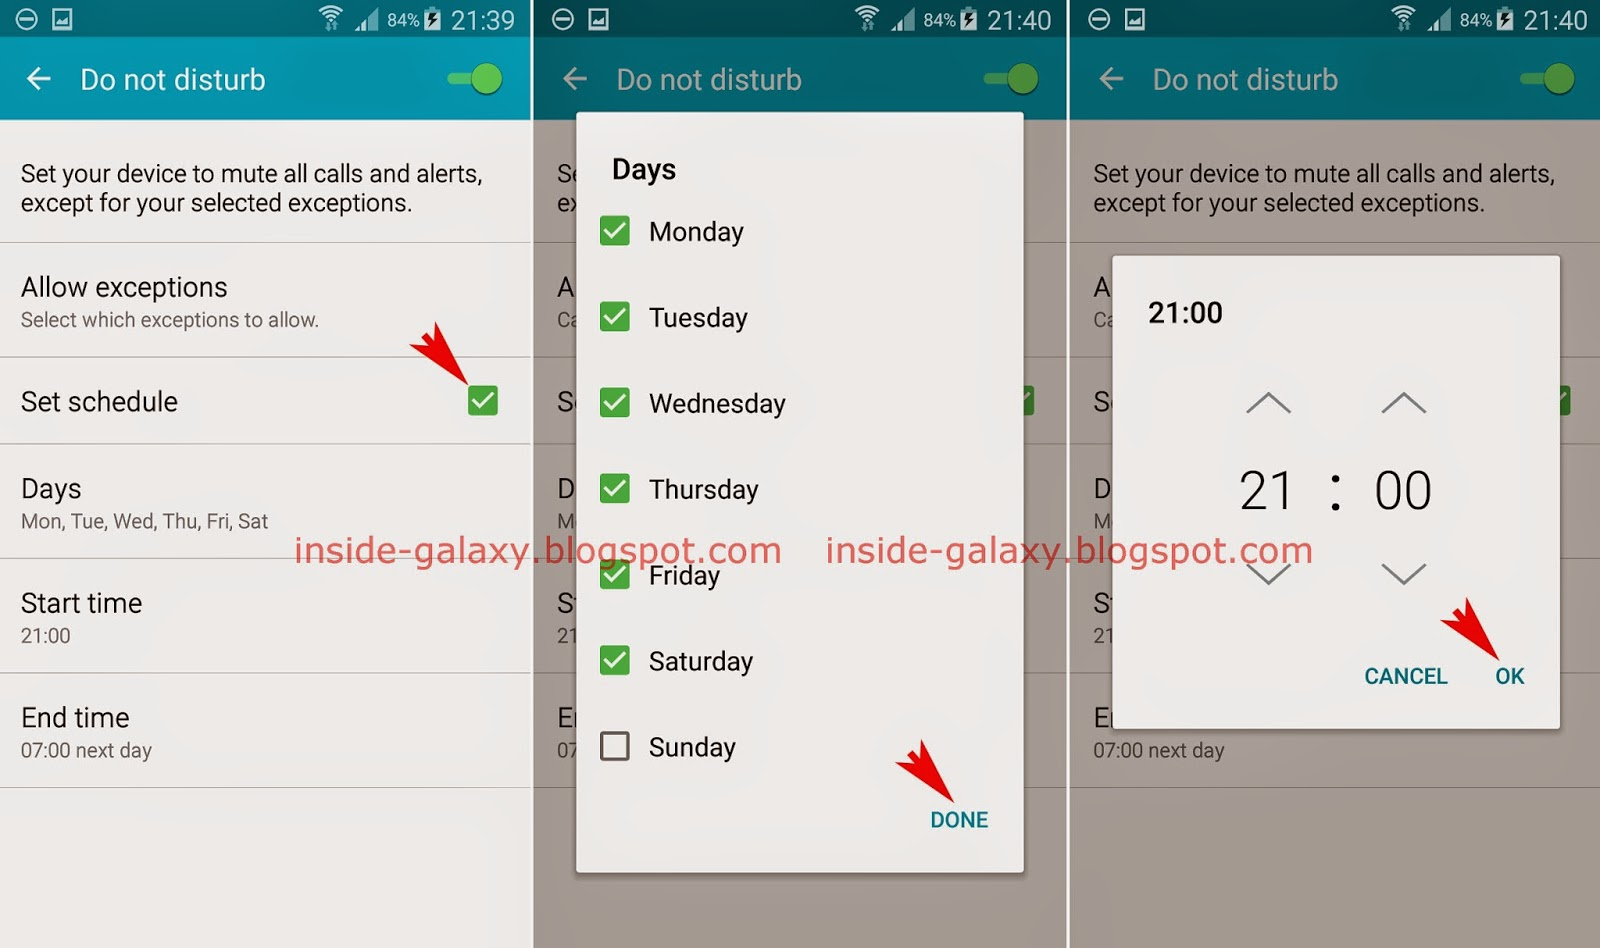 How To Set Up Schedule For Do Not Disturb Feature? If Needed, You Can  Samsung Galaxy S5: How To Block